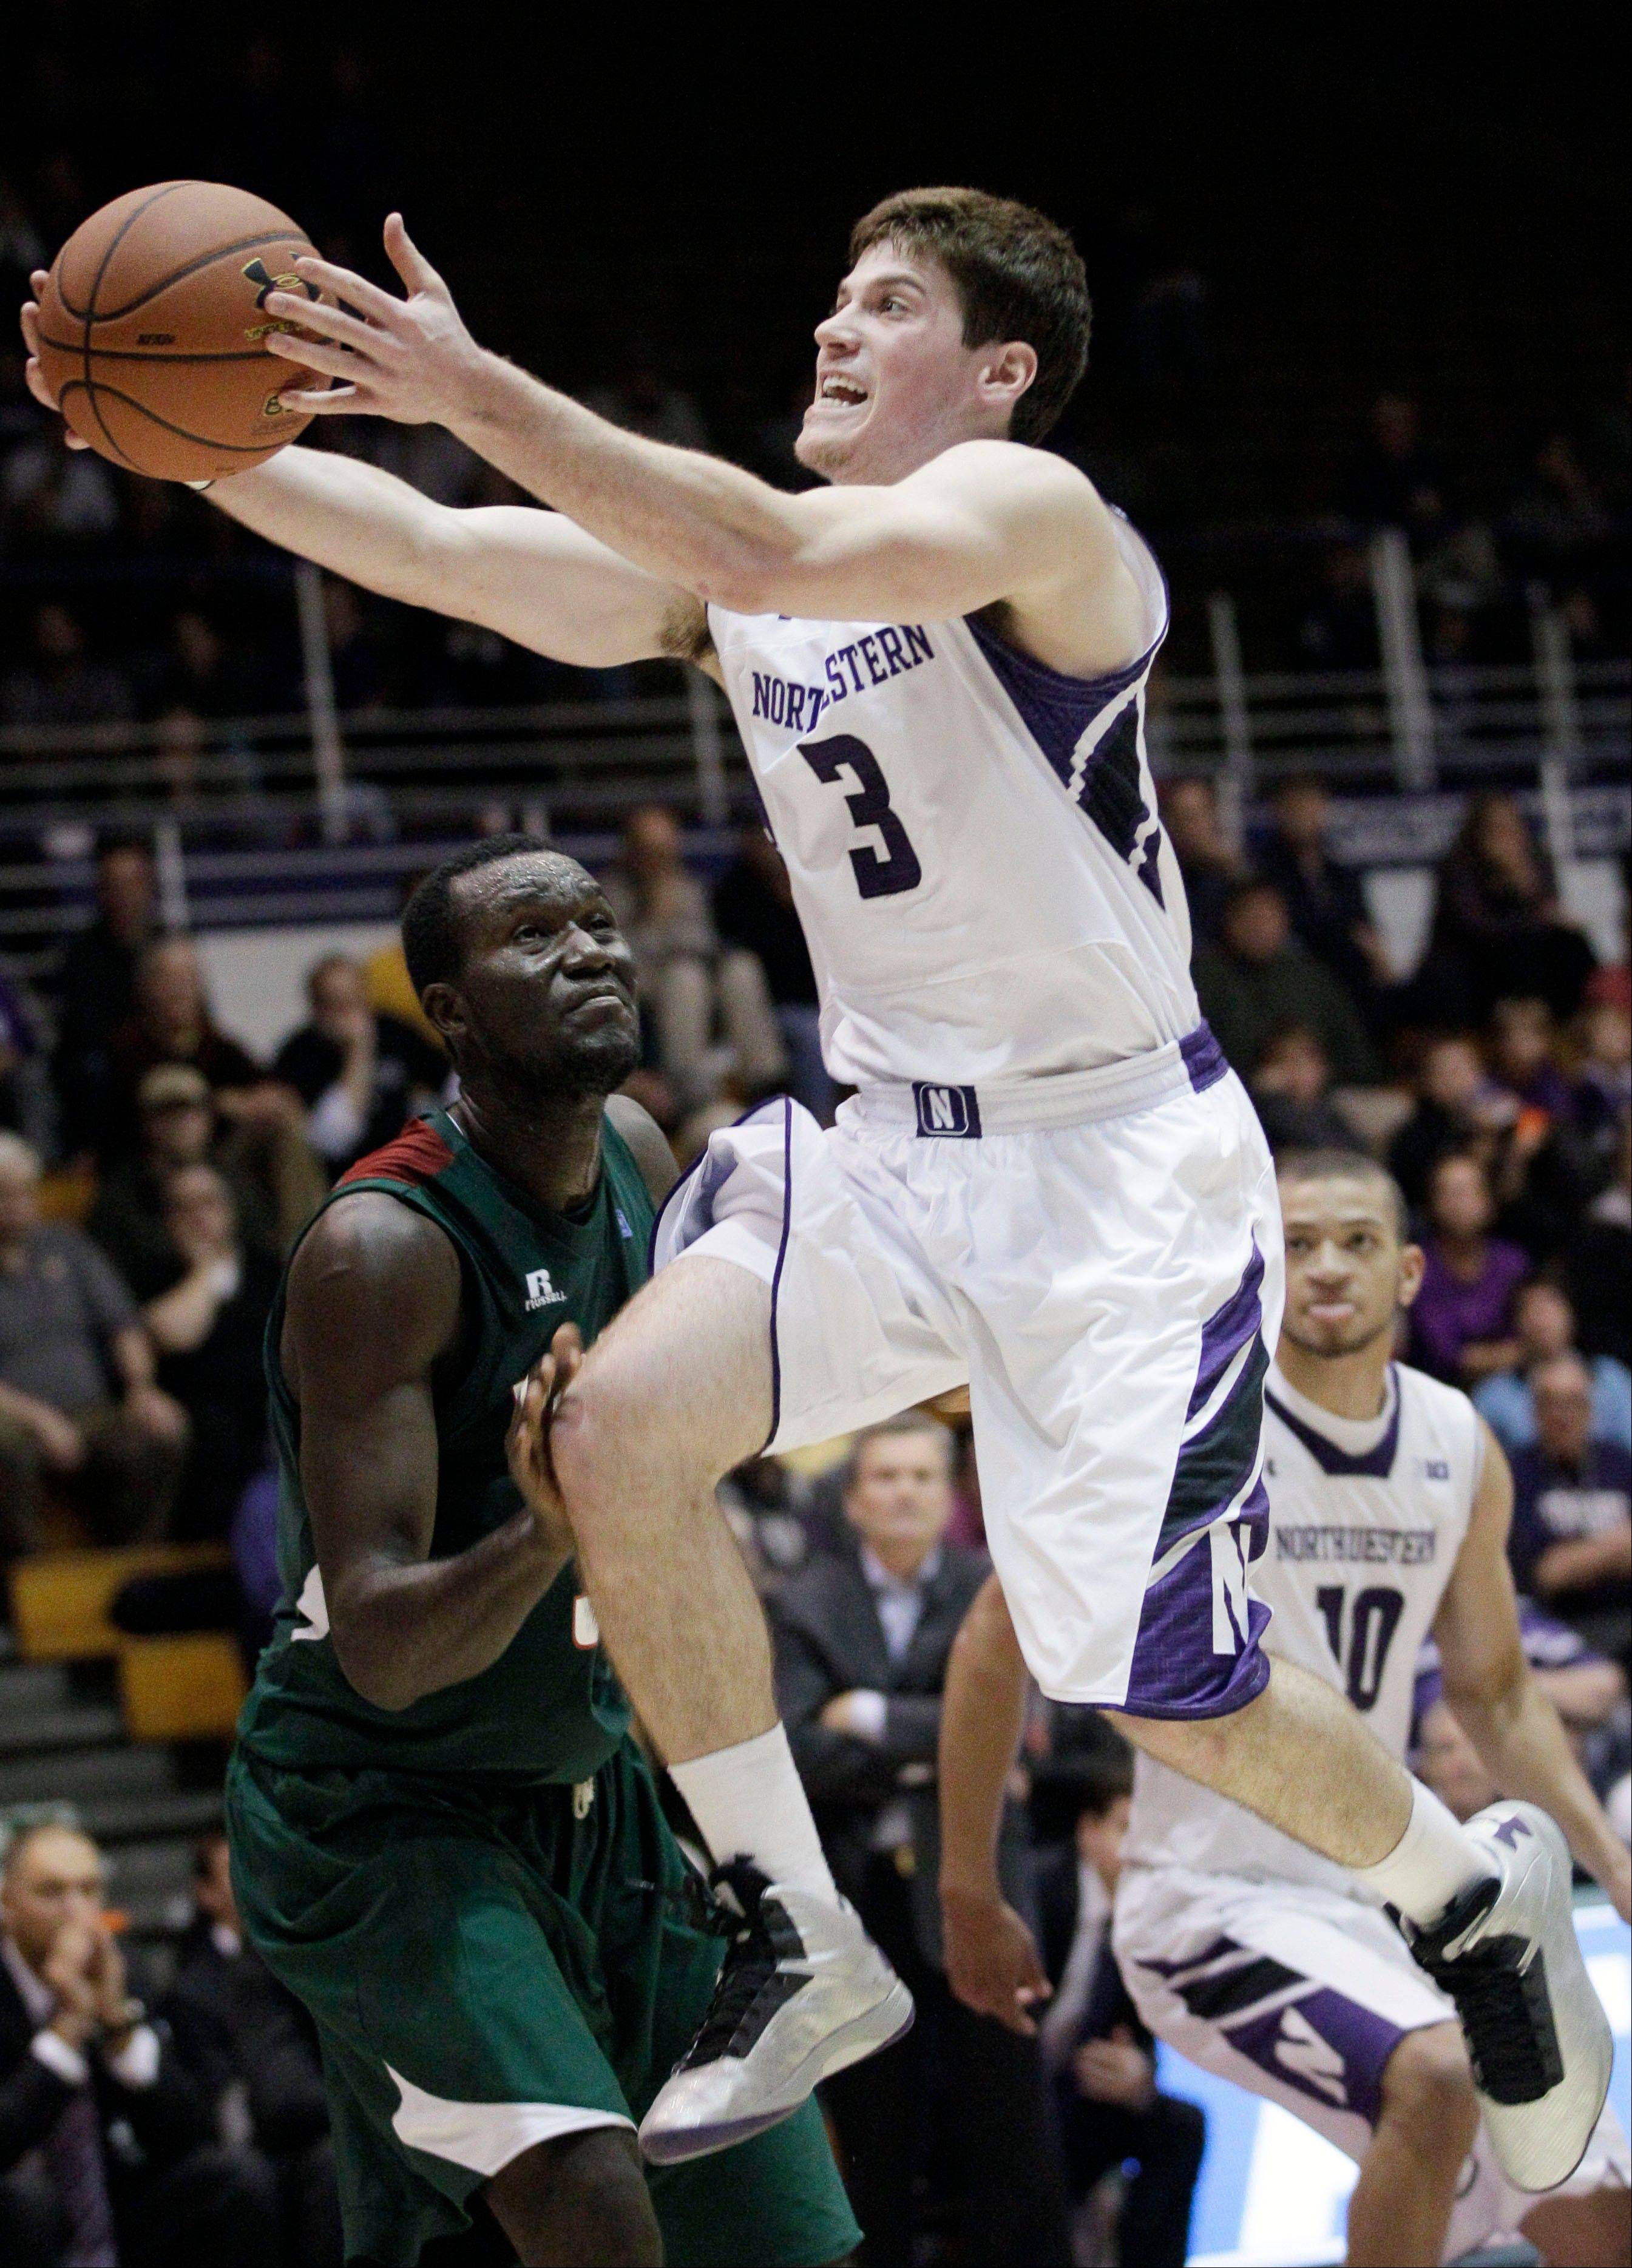 Northwestern guard Dave Sobolewski (3) drives to the basket as Mississippi Valley State center Julius Francis during the second half of an NCAA college basketball game in Evanston, Ill., on Thursday, Nov. 15, 2012. Northwestern won 81-68.